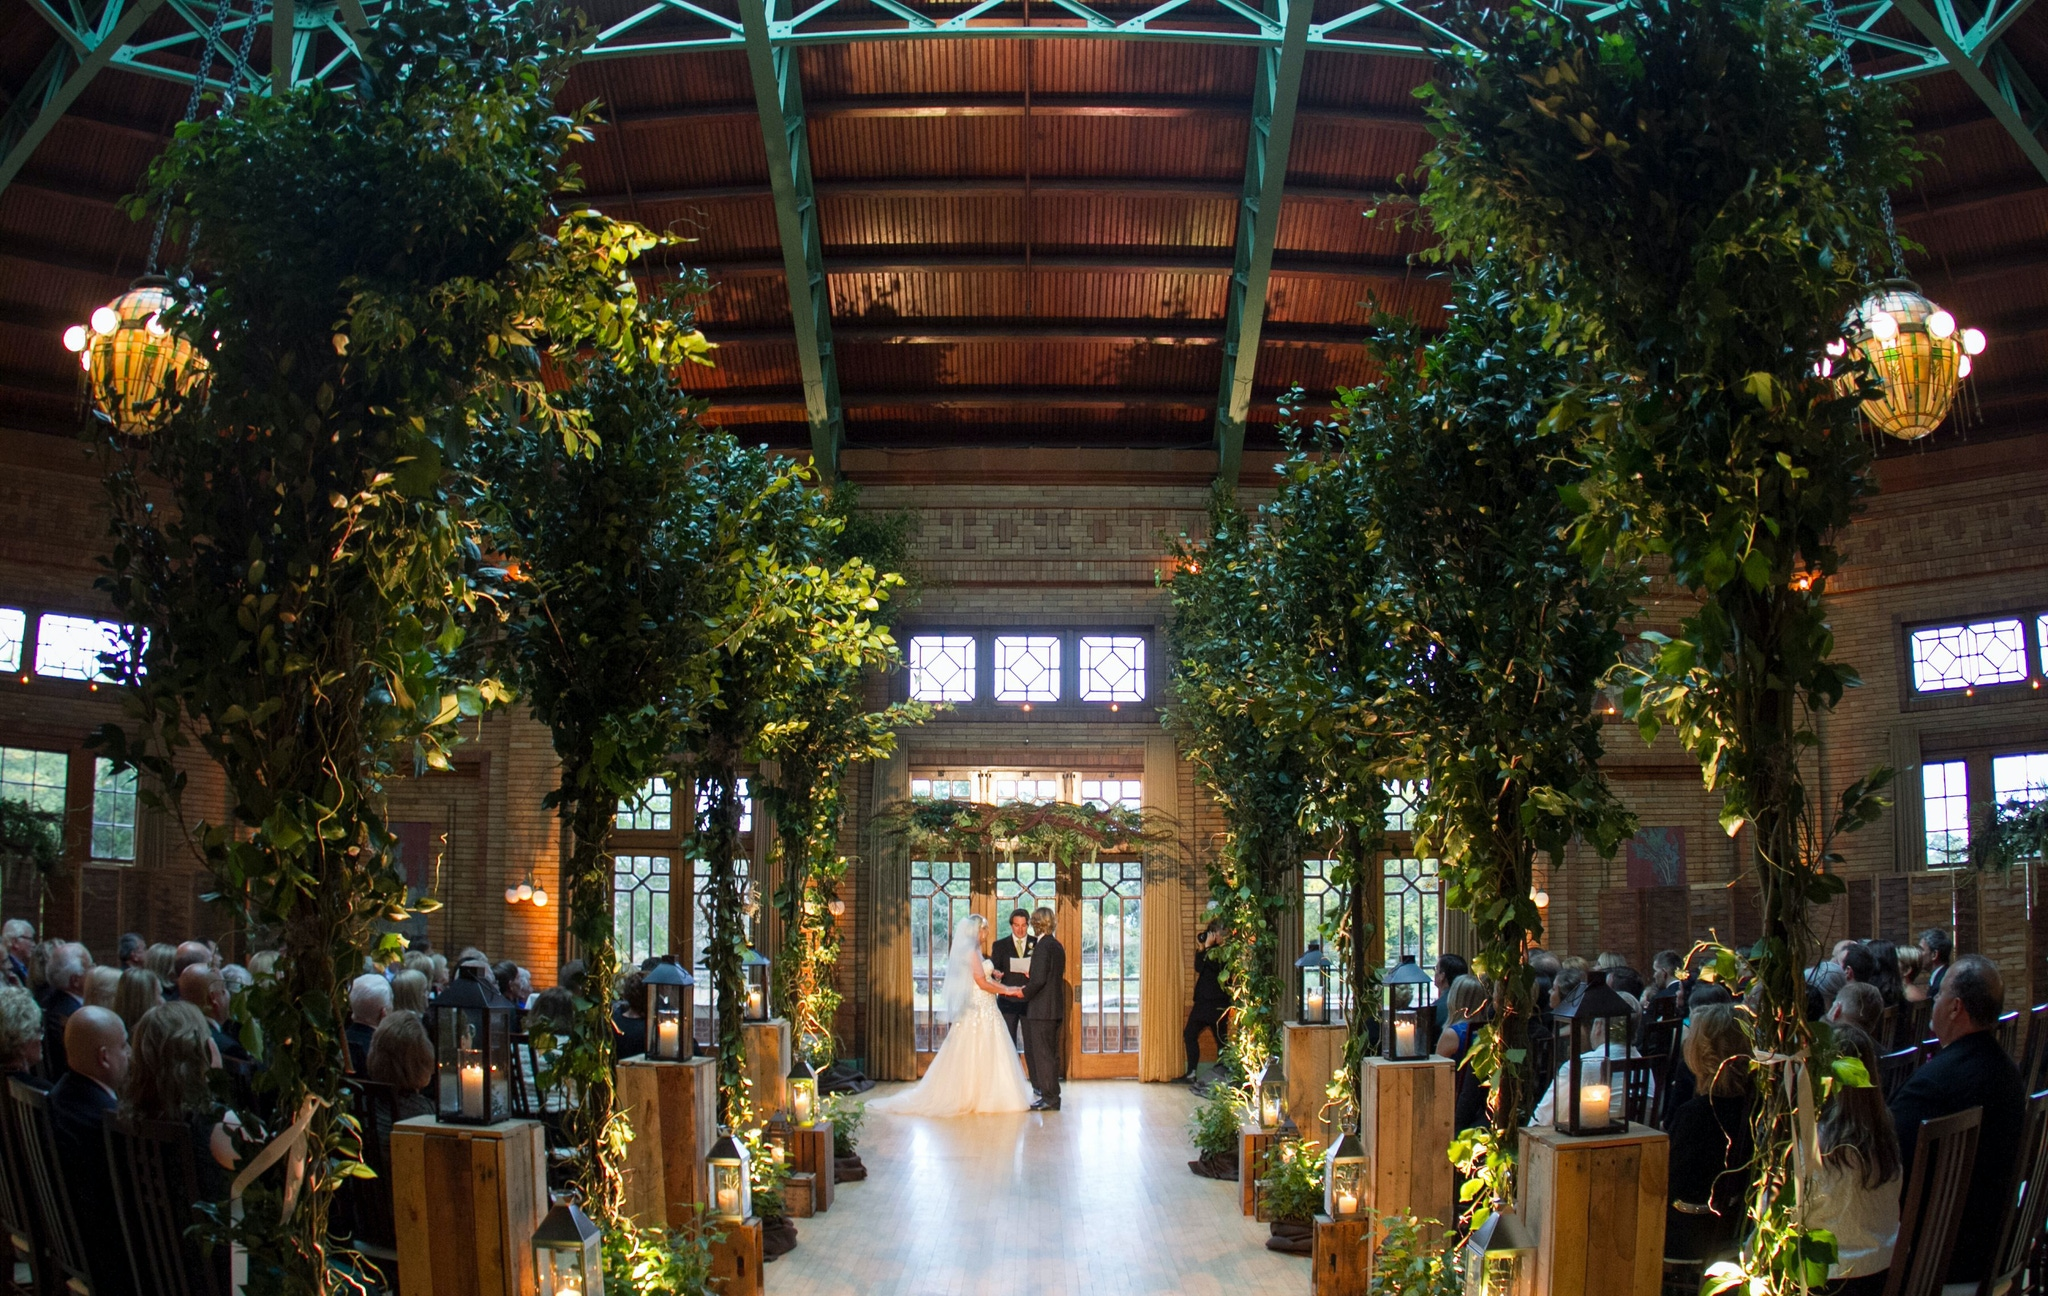 Wedding aisle ideas - Cafe Brauer